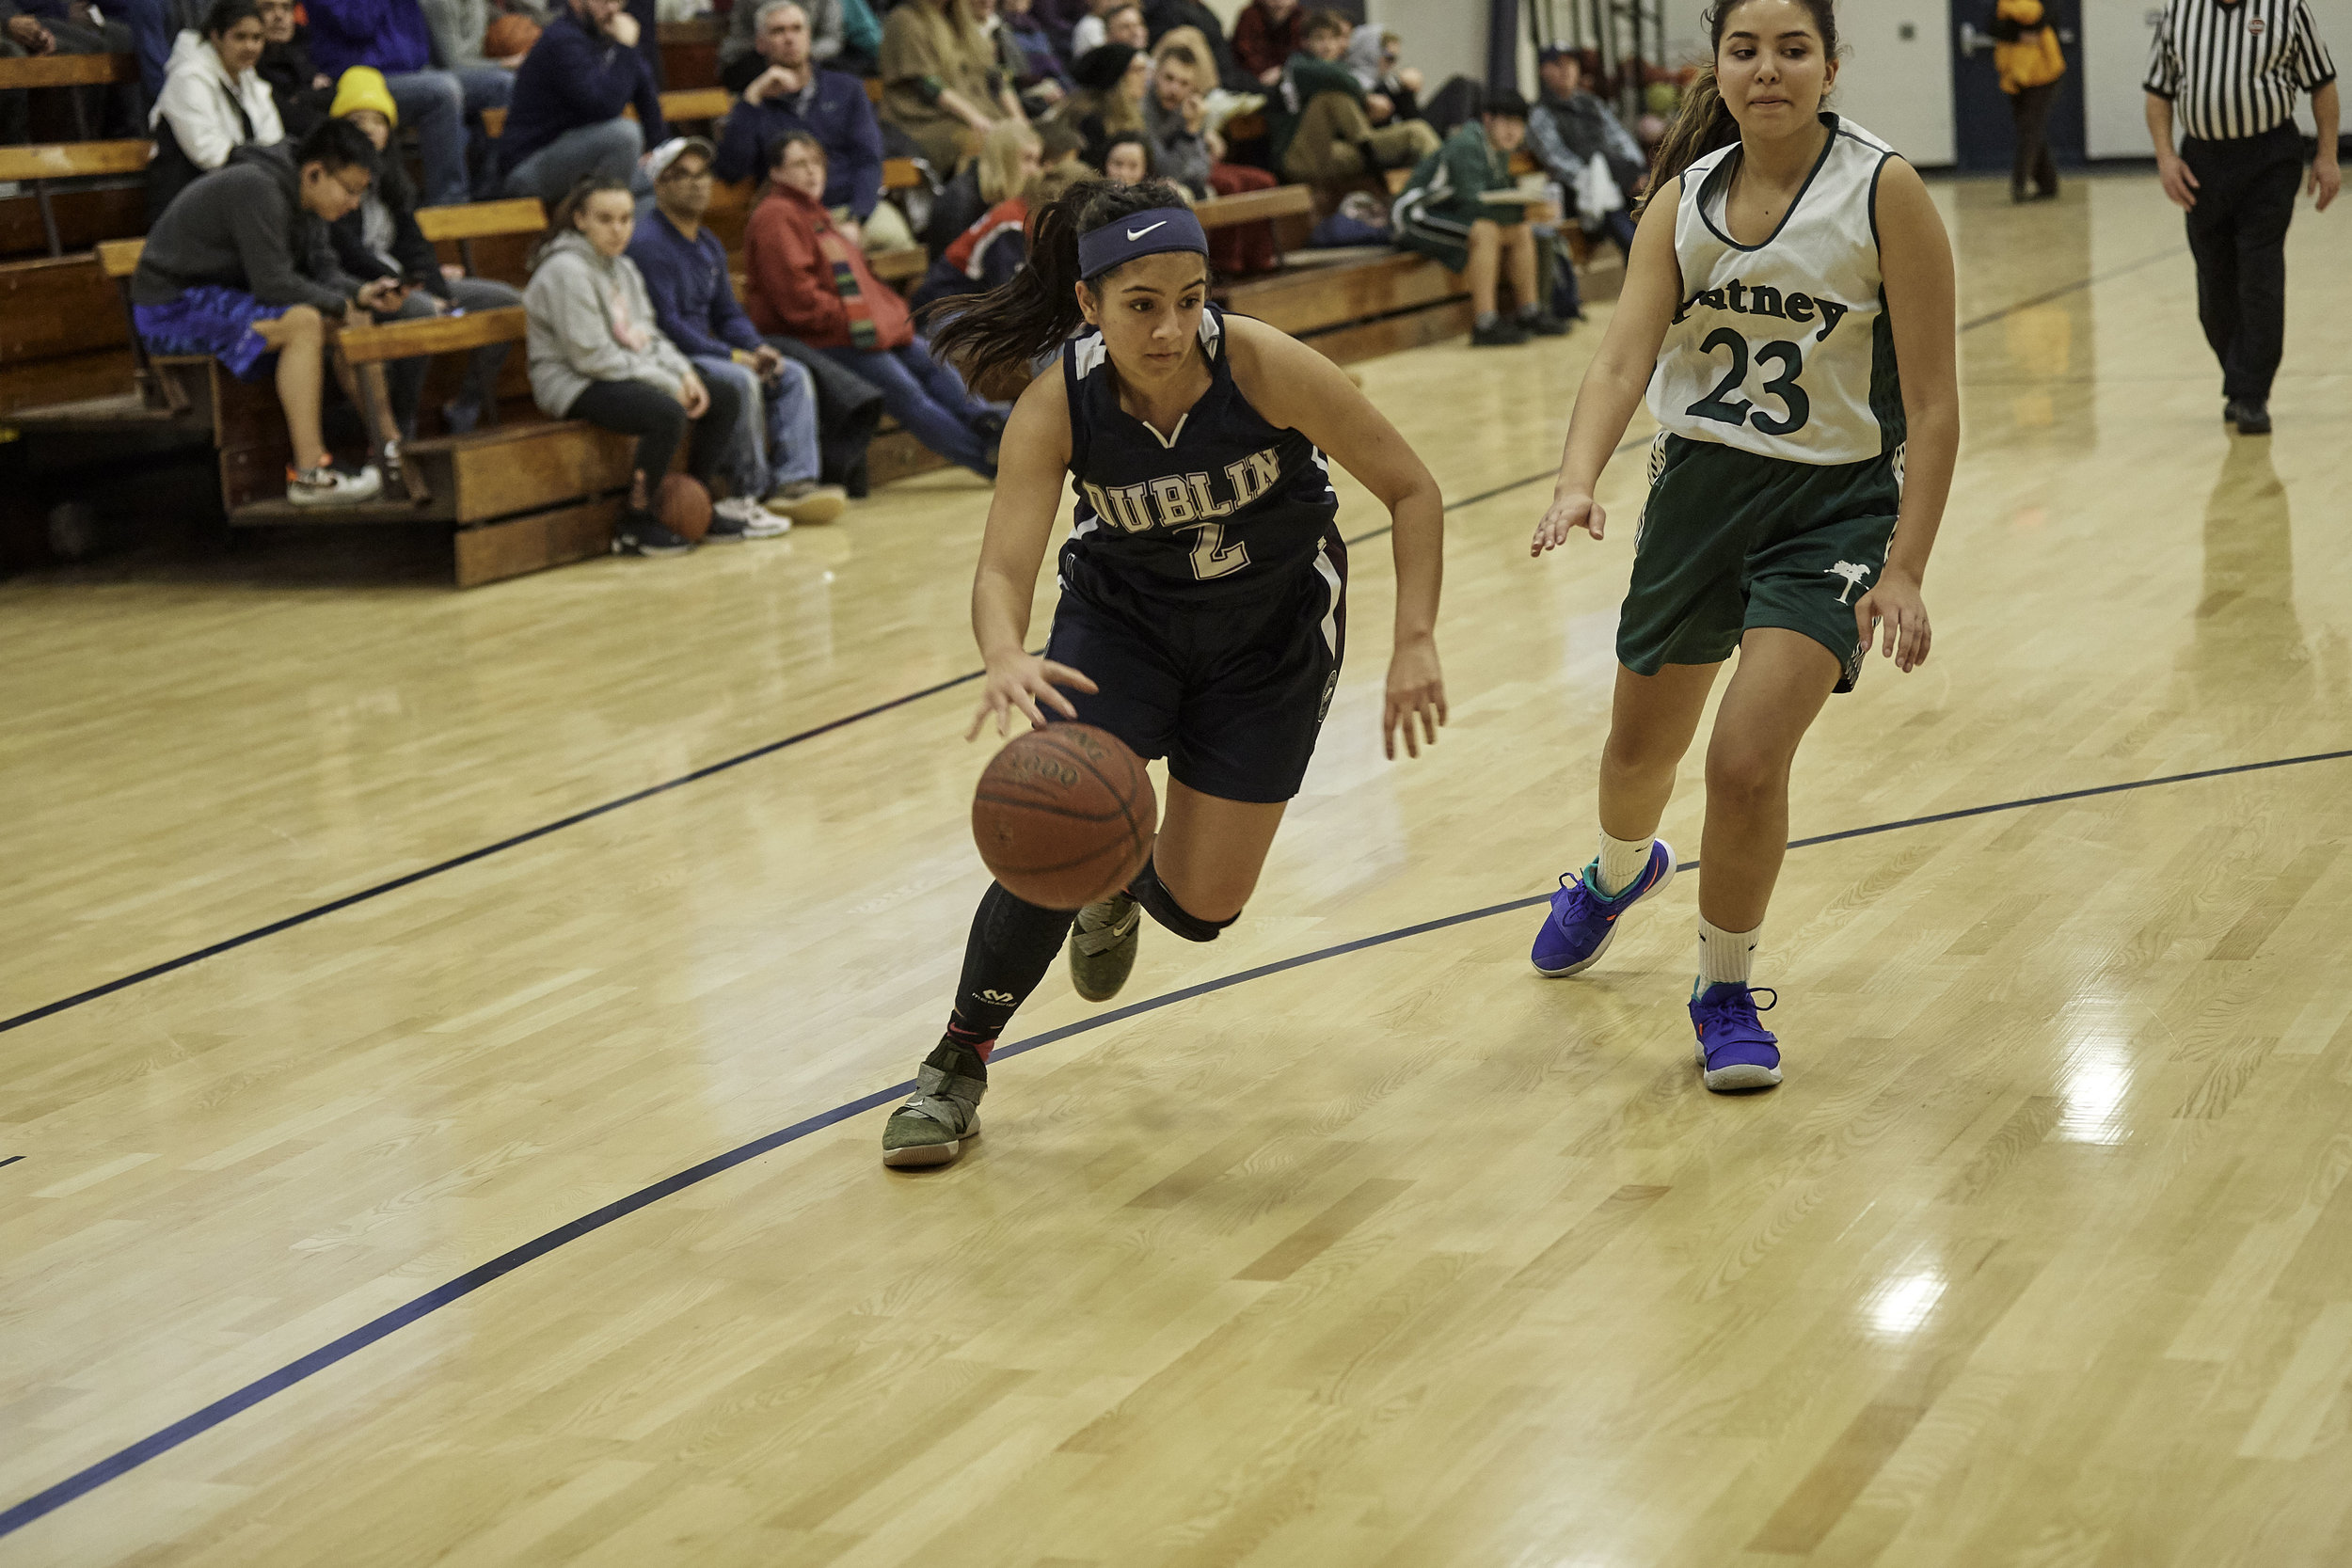 Basketball vs Putney School, February 9, 2019 - 167386.jpg